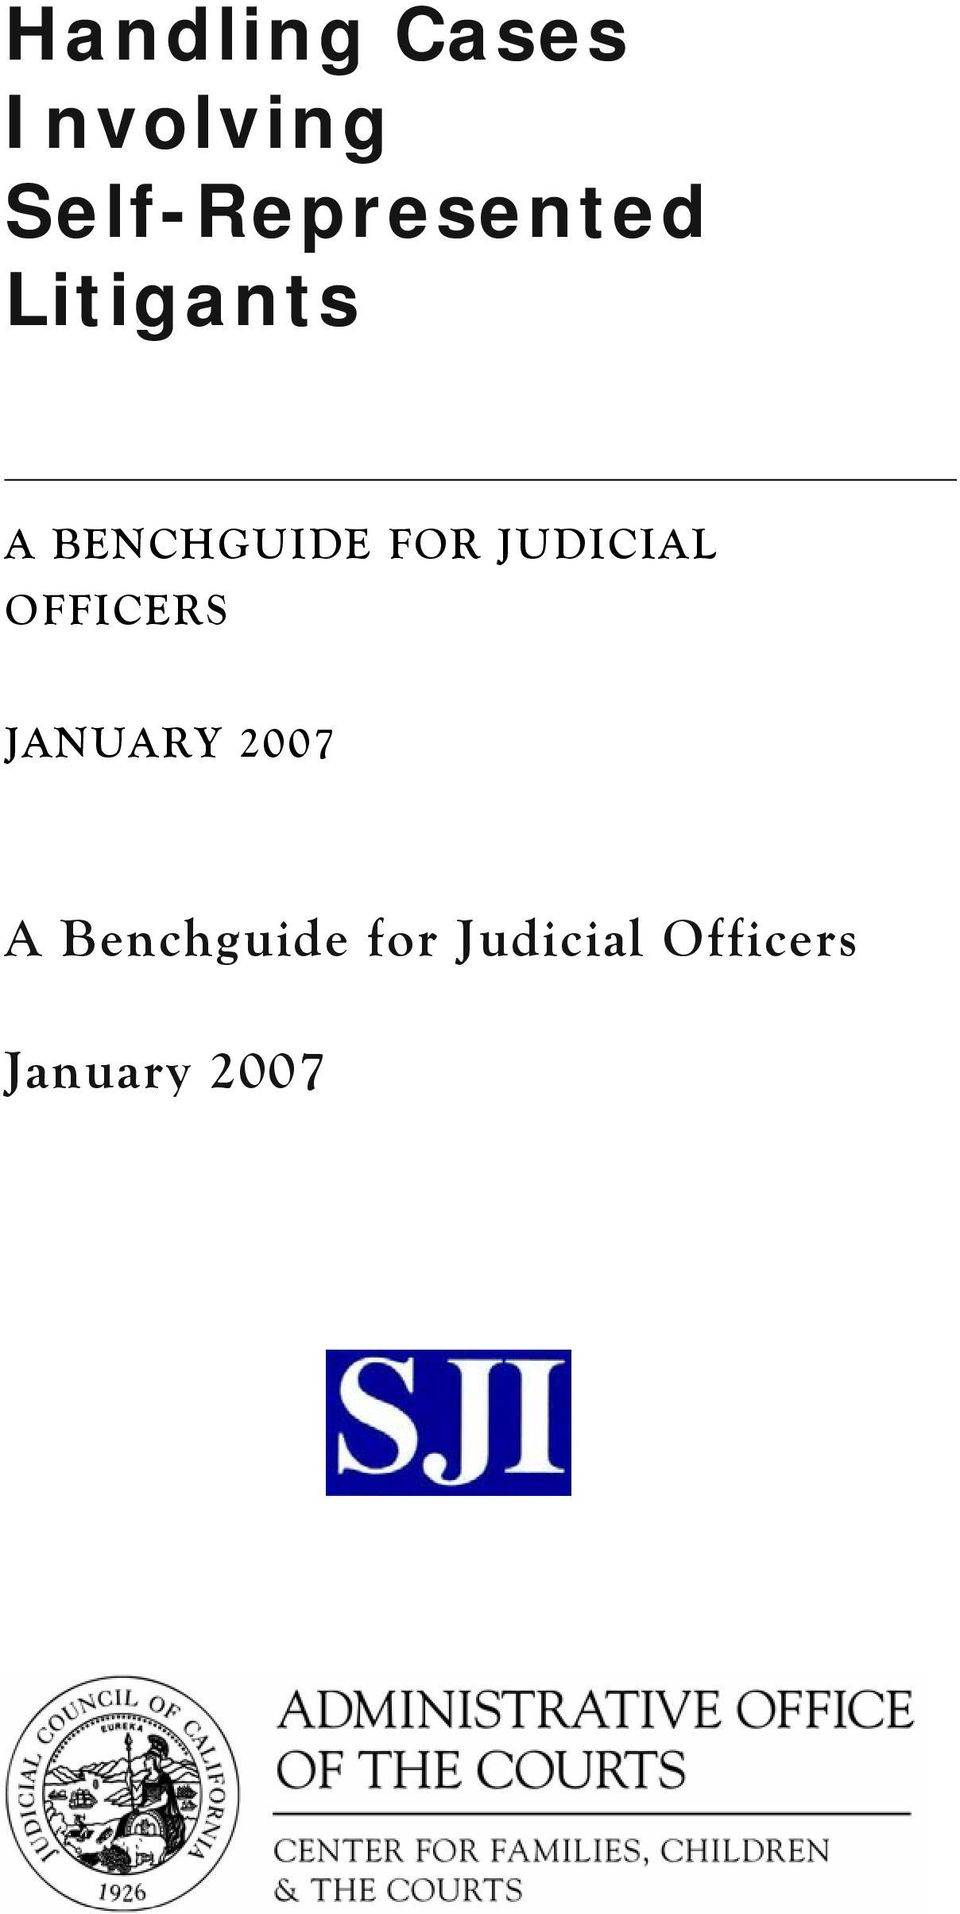 BENCHGUIDE FOR JUDICIAL OFFICERS